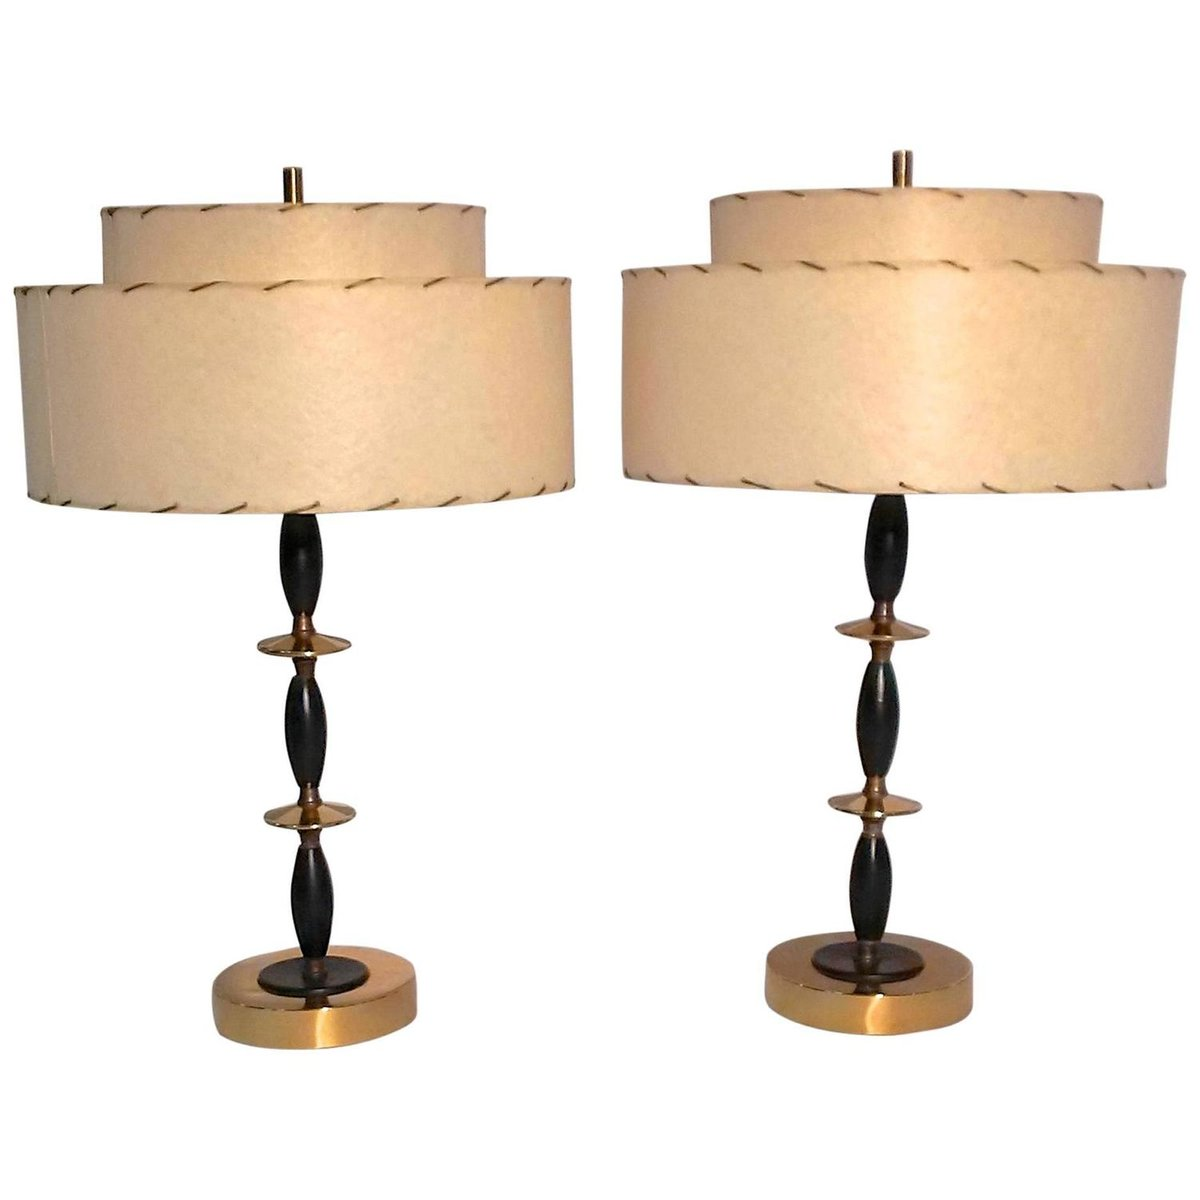 Mid Century Modern Atomic Table Lamps 1950s Set Of 2 For